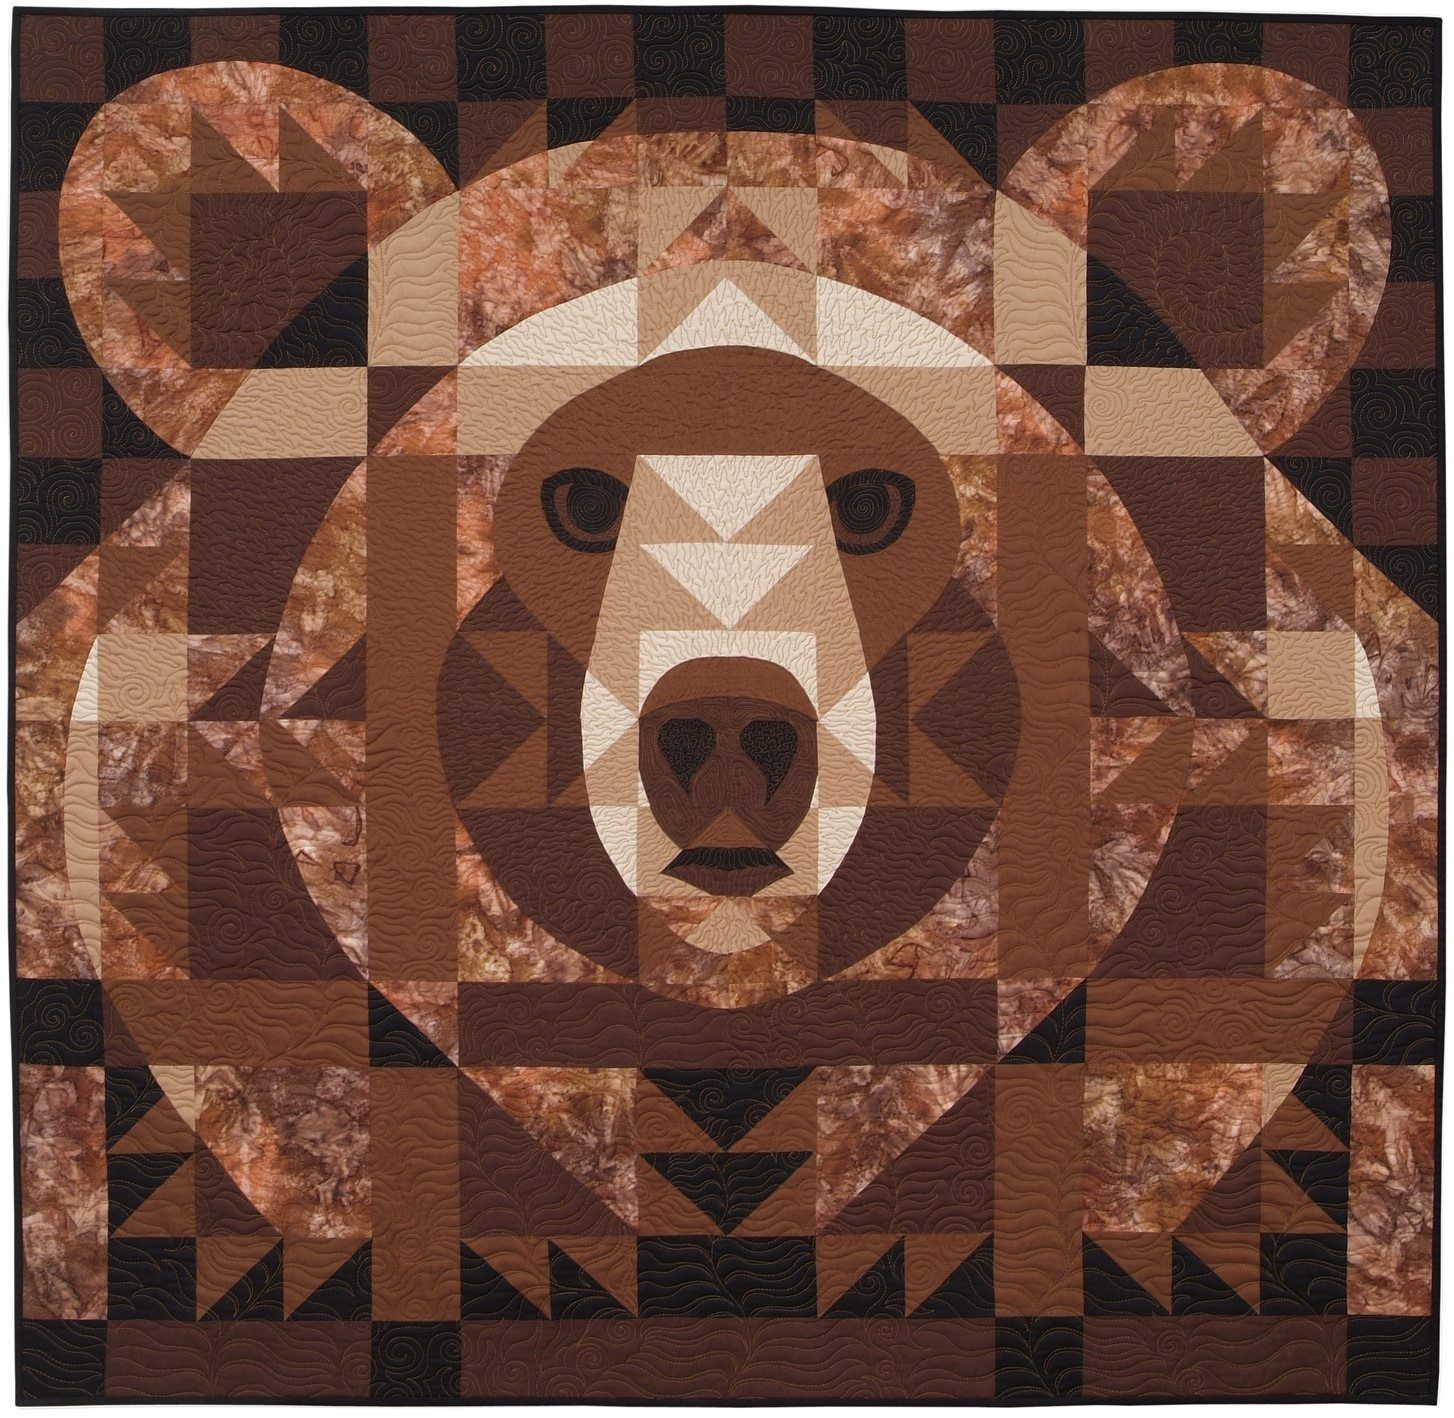 Stacks Image 1513 this is amazing. xxx | quilts | Pinterest ... : bear claw quilt block - Adamdwight.com